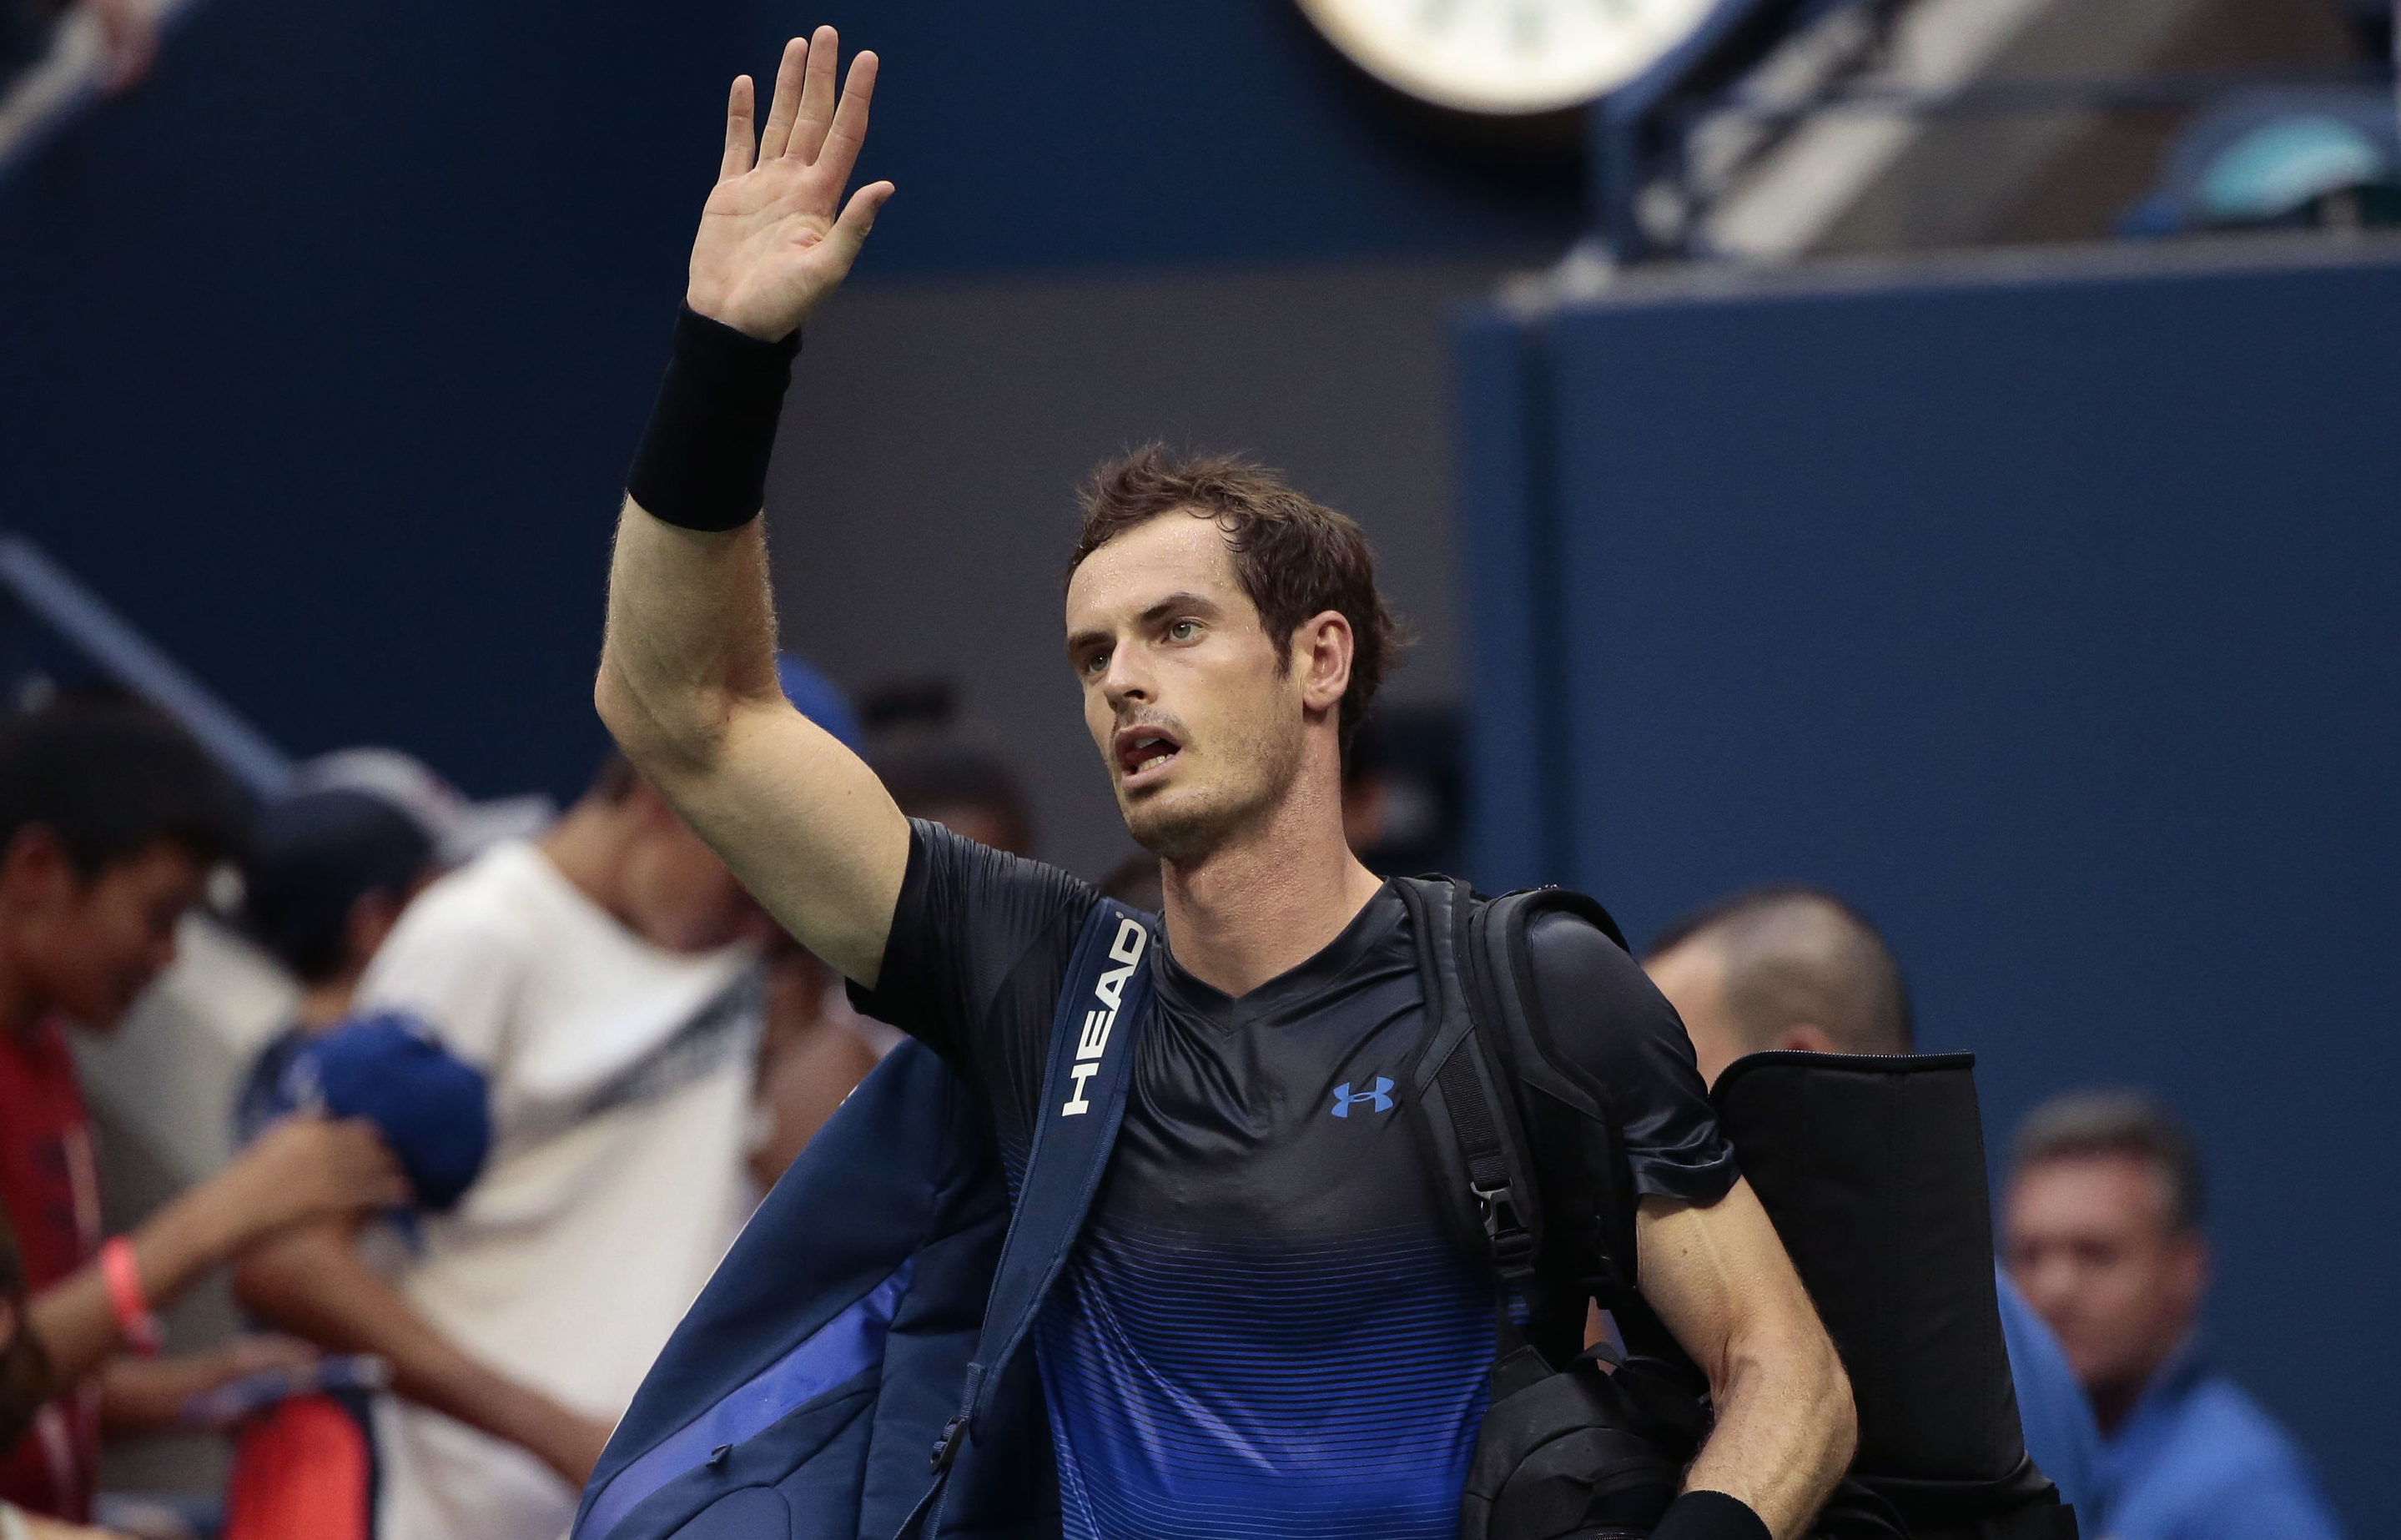 Andy Murray comes off court in New York (AP Photo/Andres Kudacki)